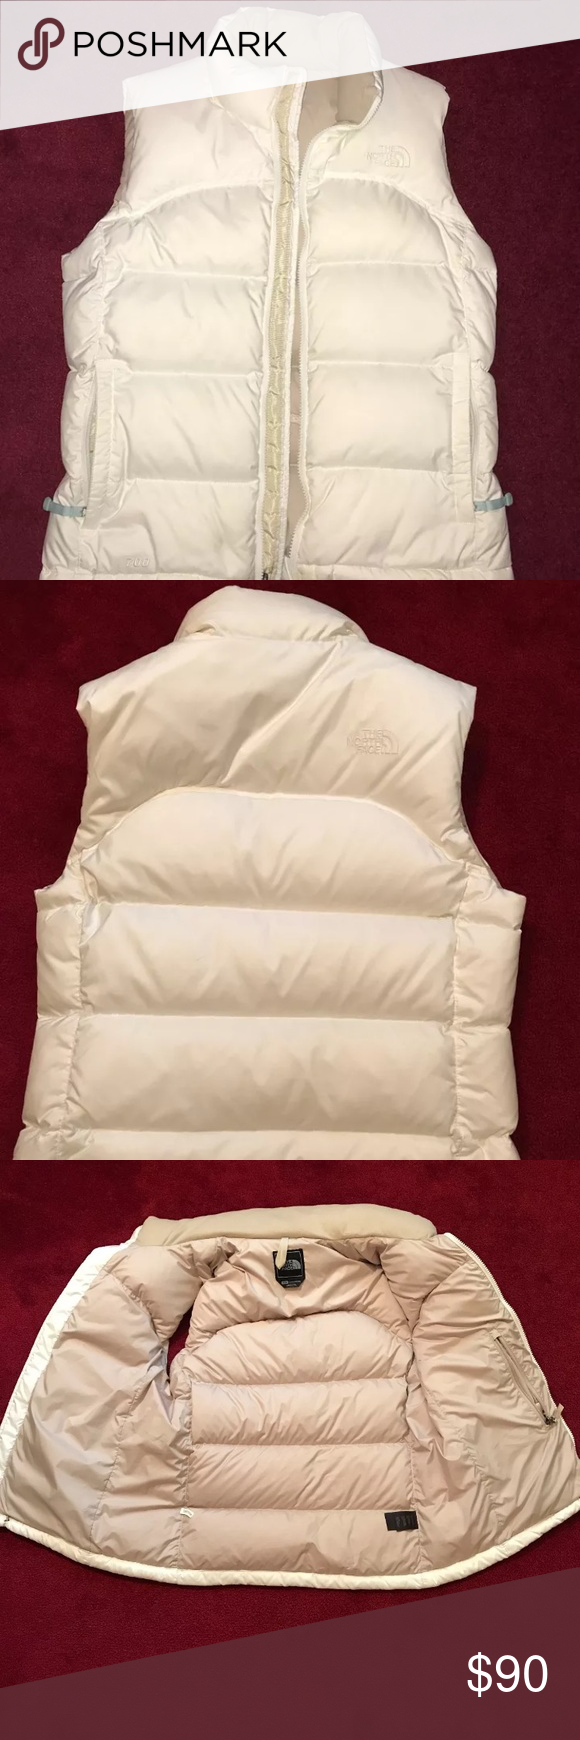 Women S Northface Nuptse 700 Down Puffer Vest Cream Tan Down Puffer Vest In Perfect Condition Worn A Couple North Face Jacket Northface Nuptse Clothes Design [ 1740 x 580 Pixel ]